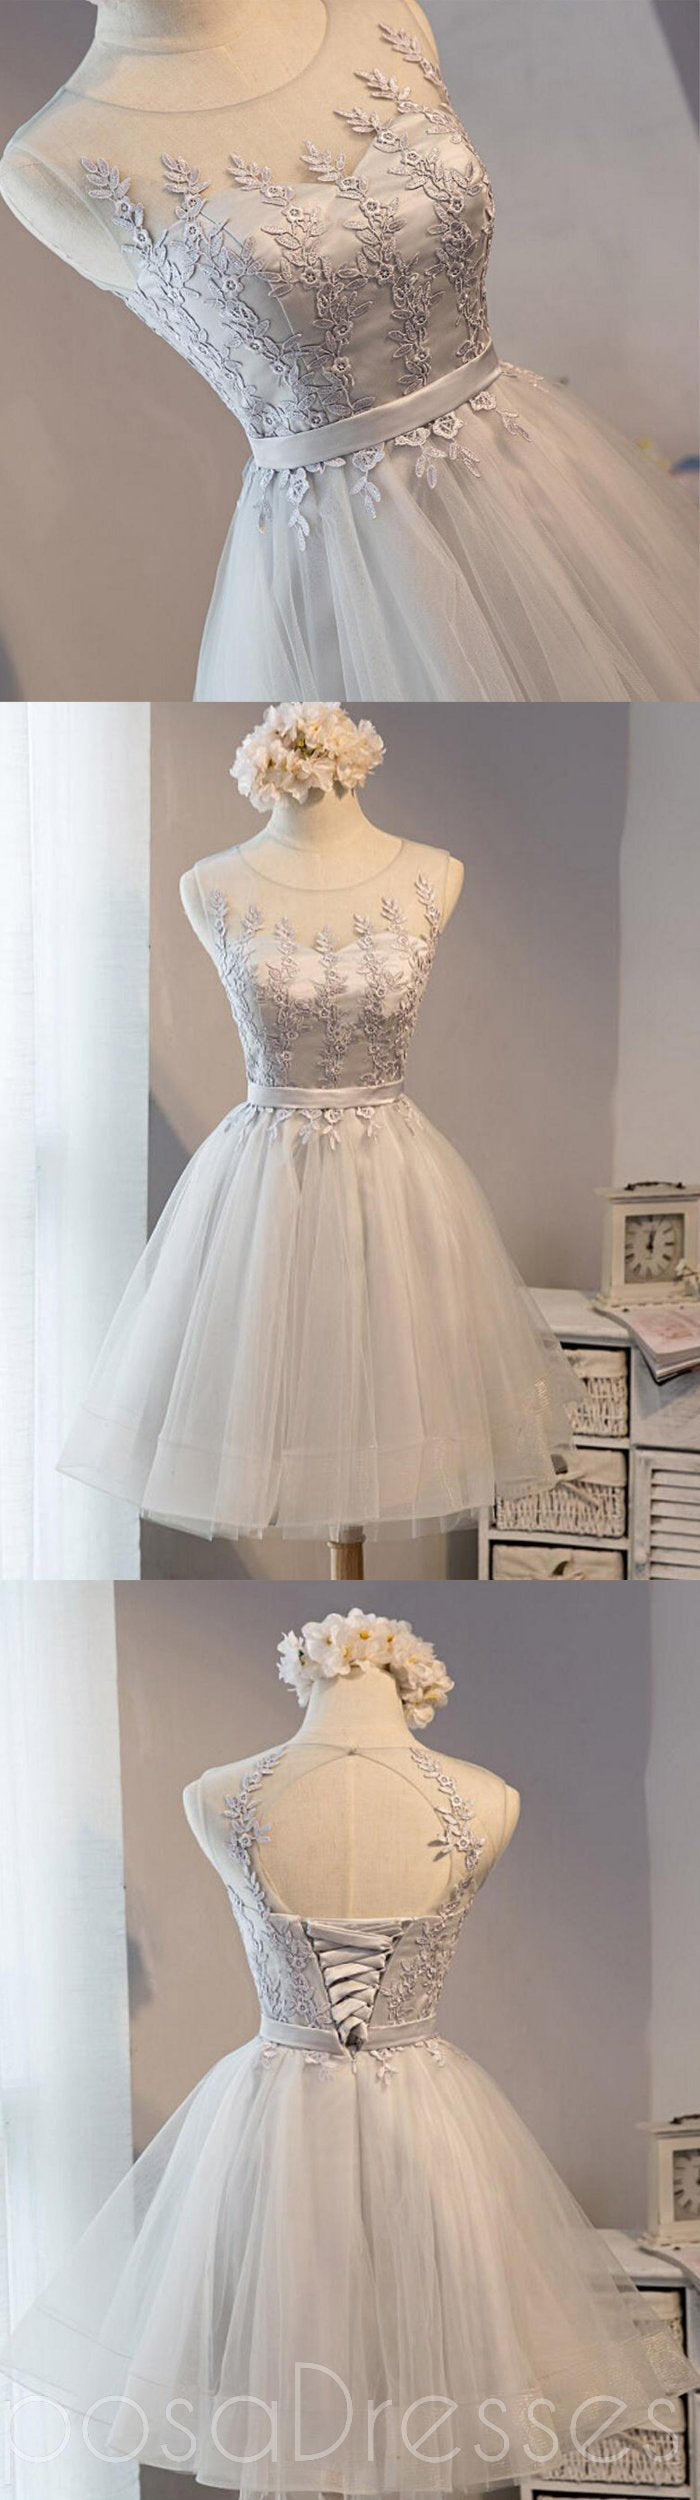 Cute Gray Lace Short Homecoming Prom Dresses, Affordable Short Party ...